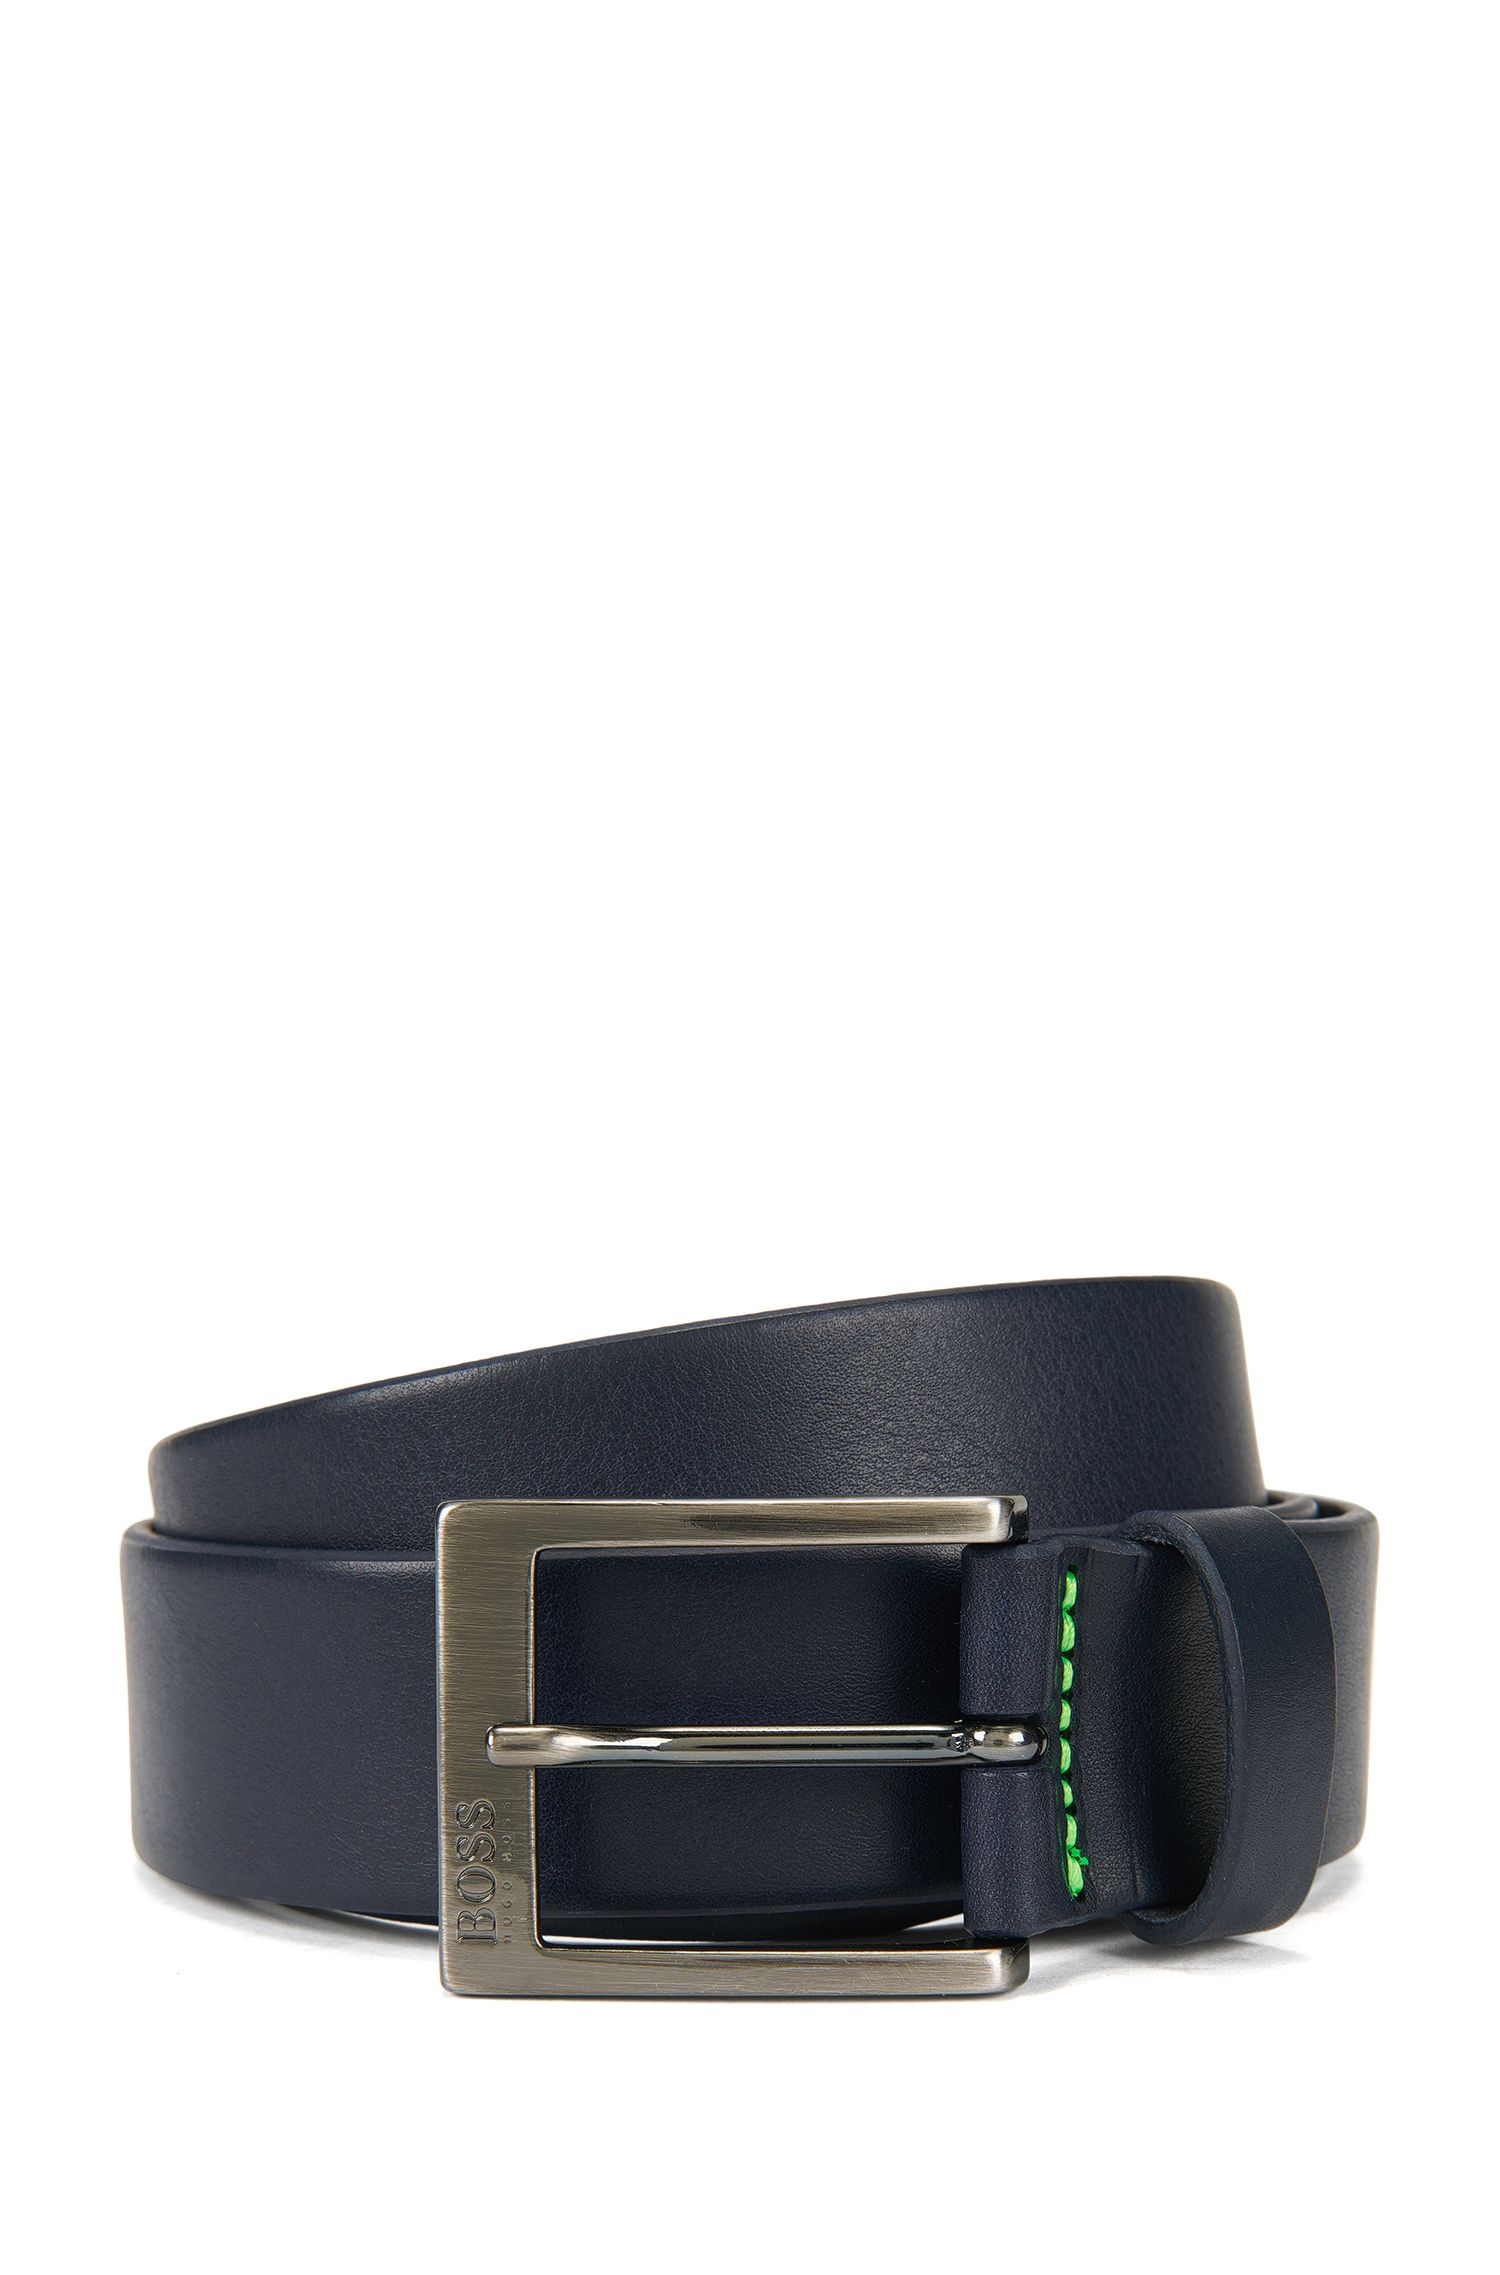 Leather belt with brushed gunmetal buckle